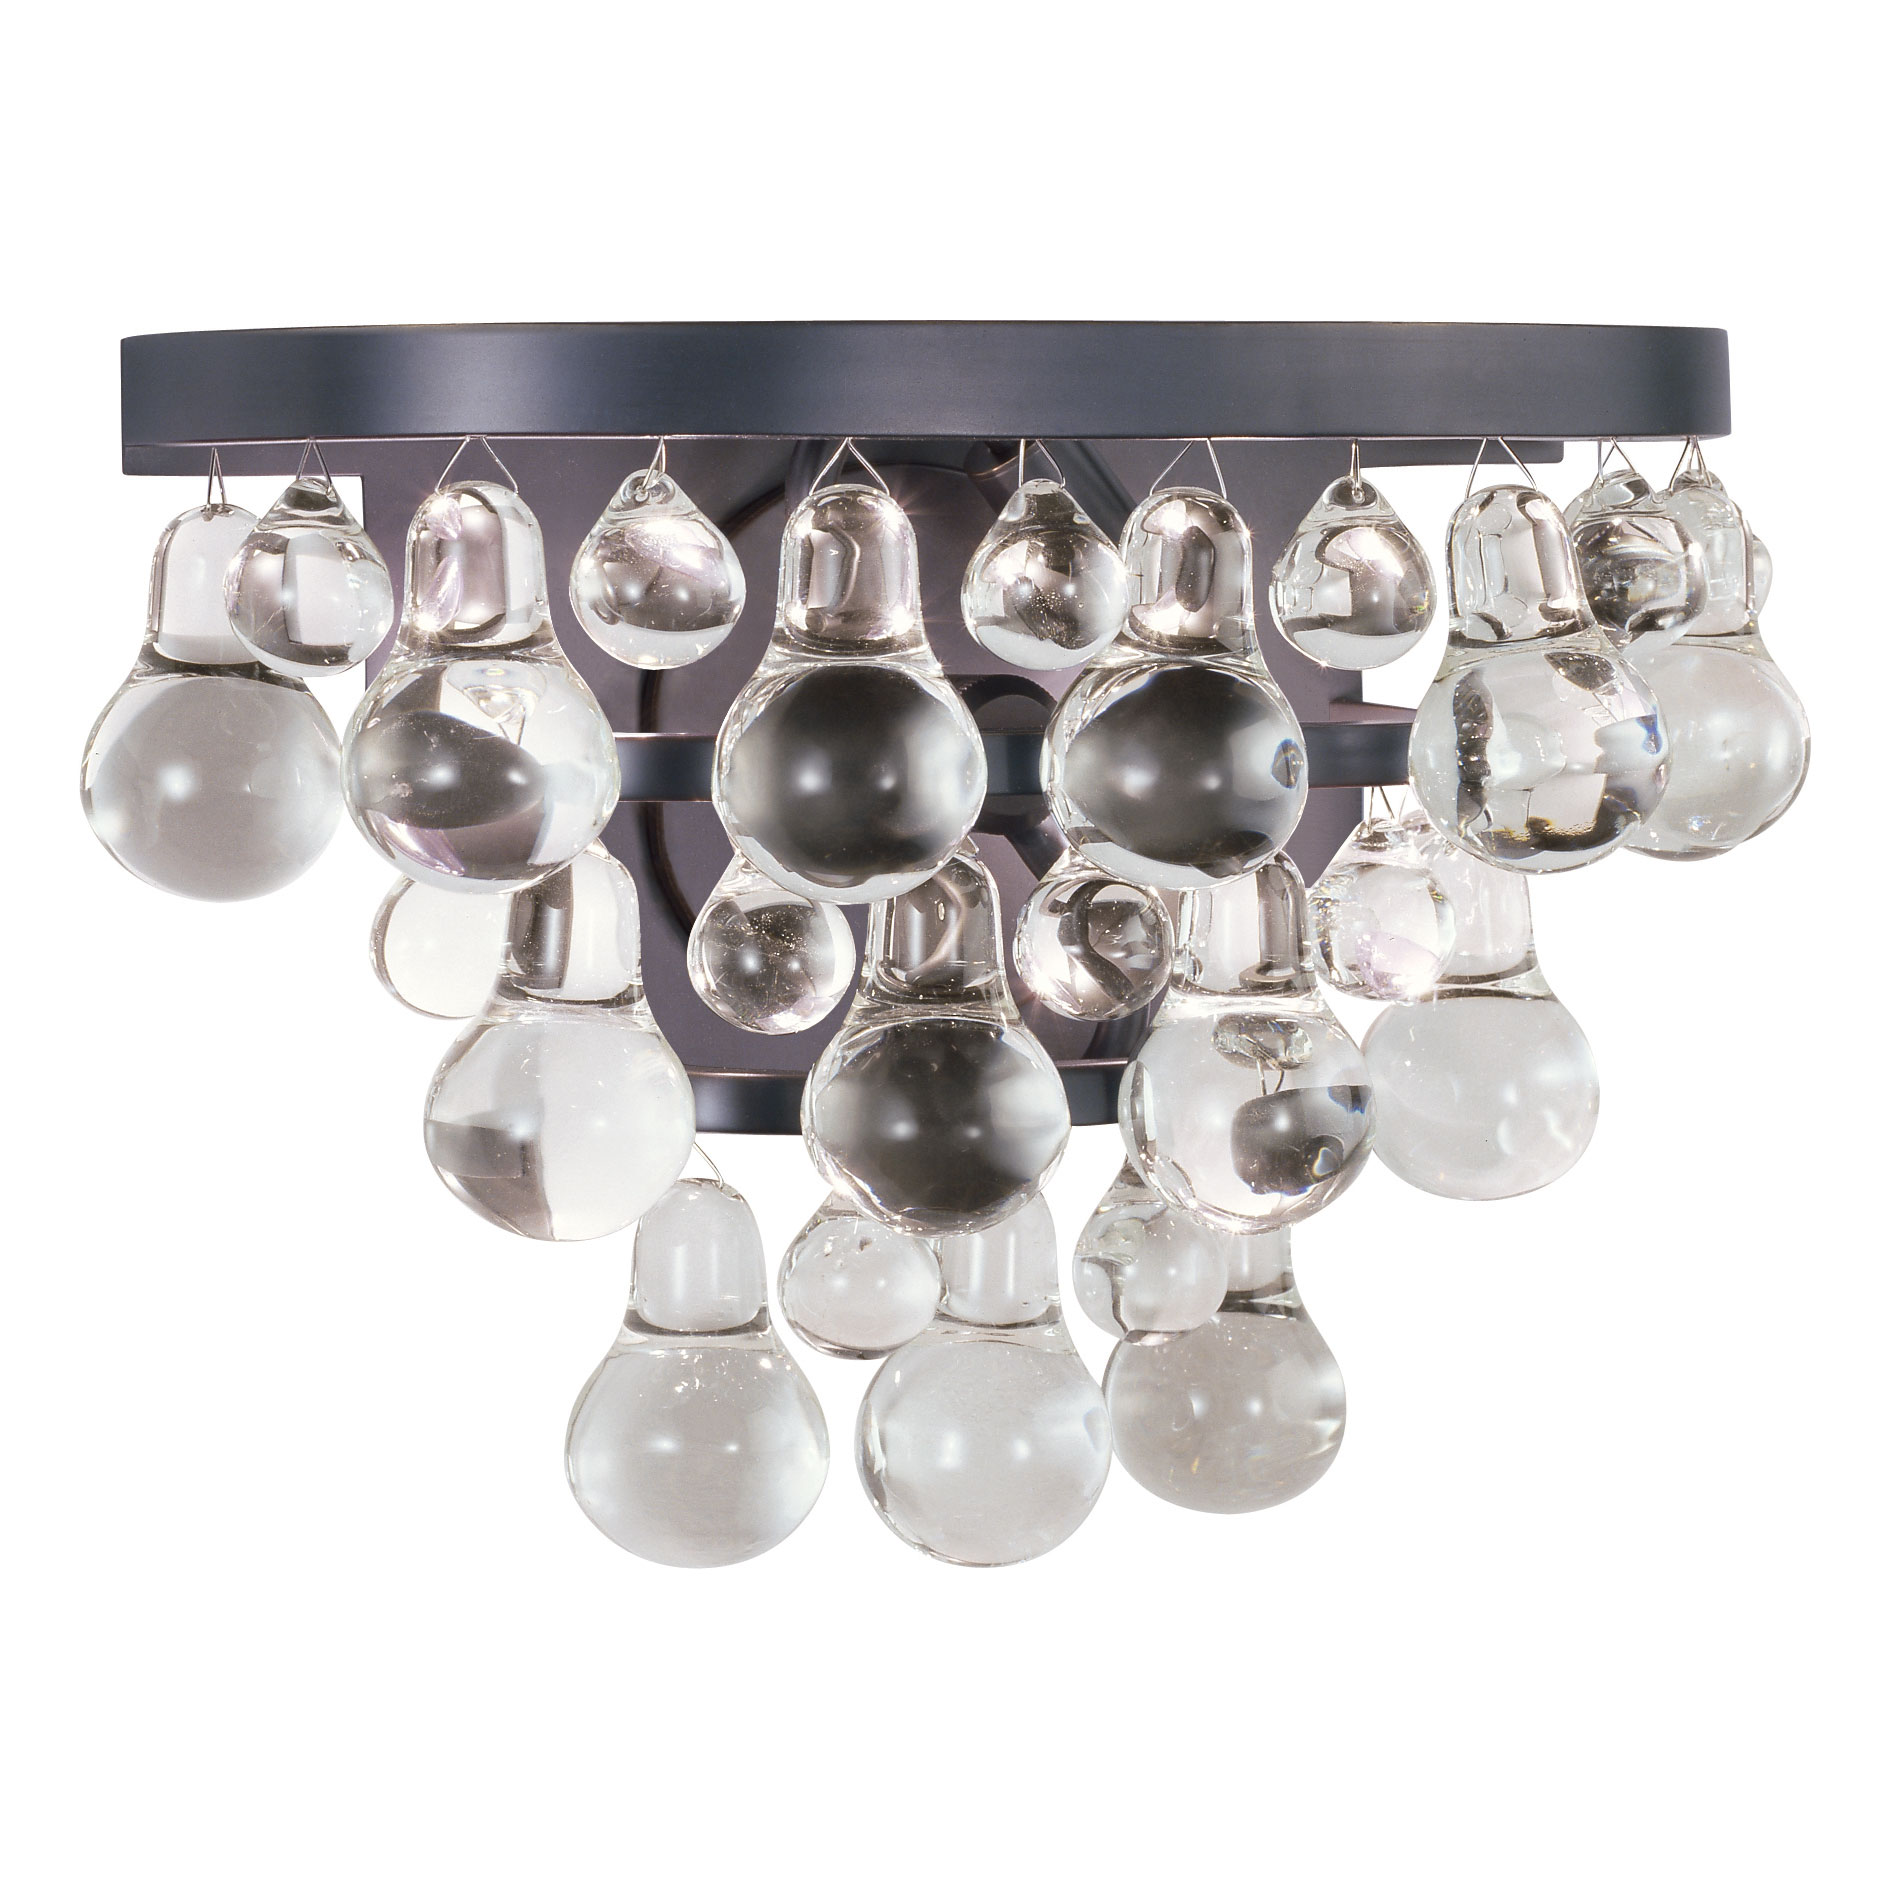 Bling Wall Sconce by Robert Abbey Collectic Home